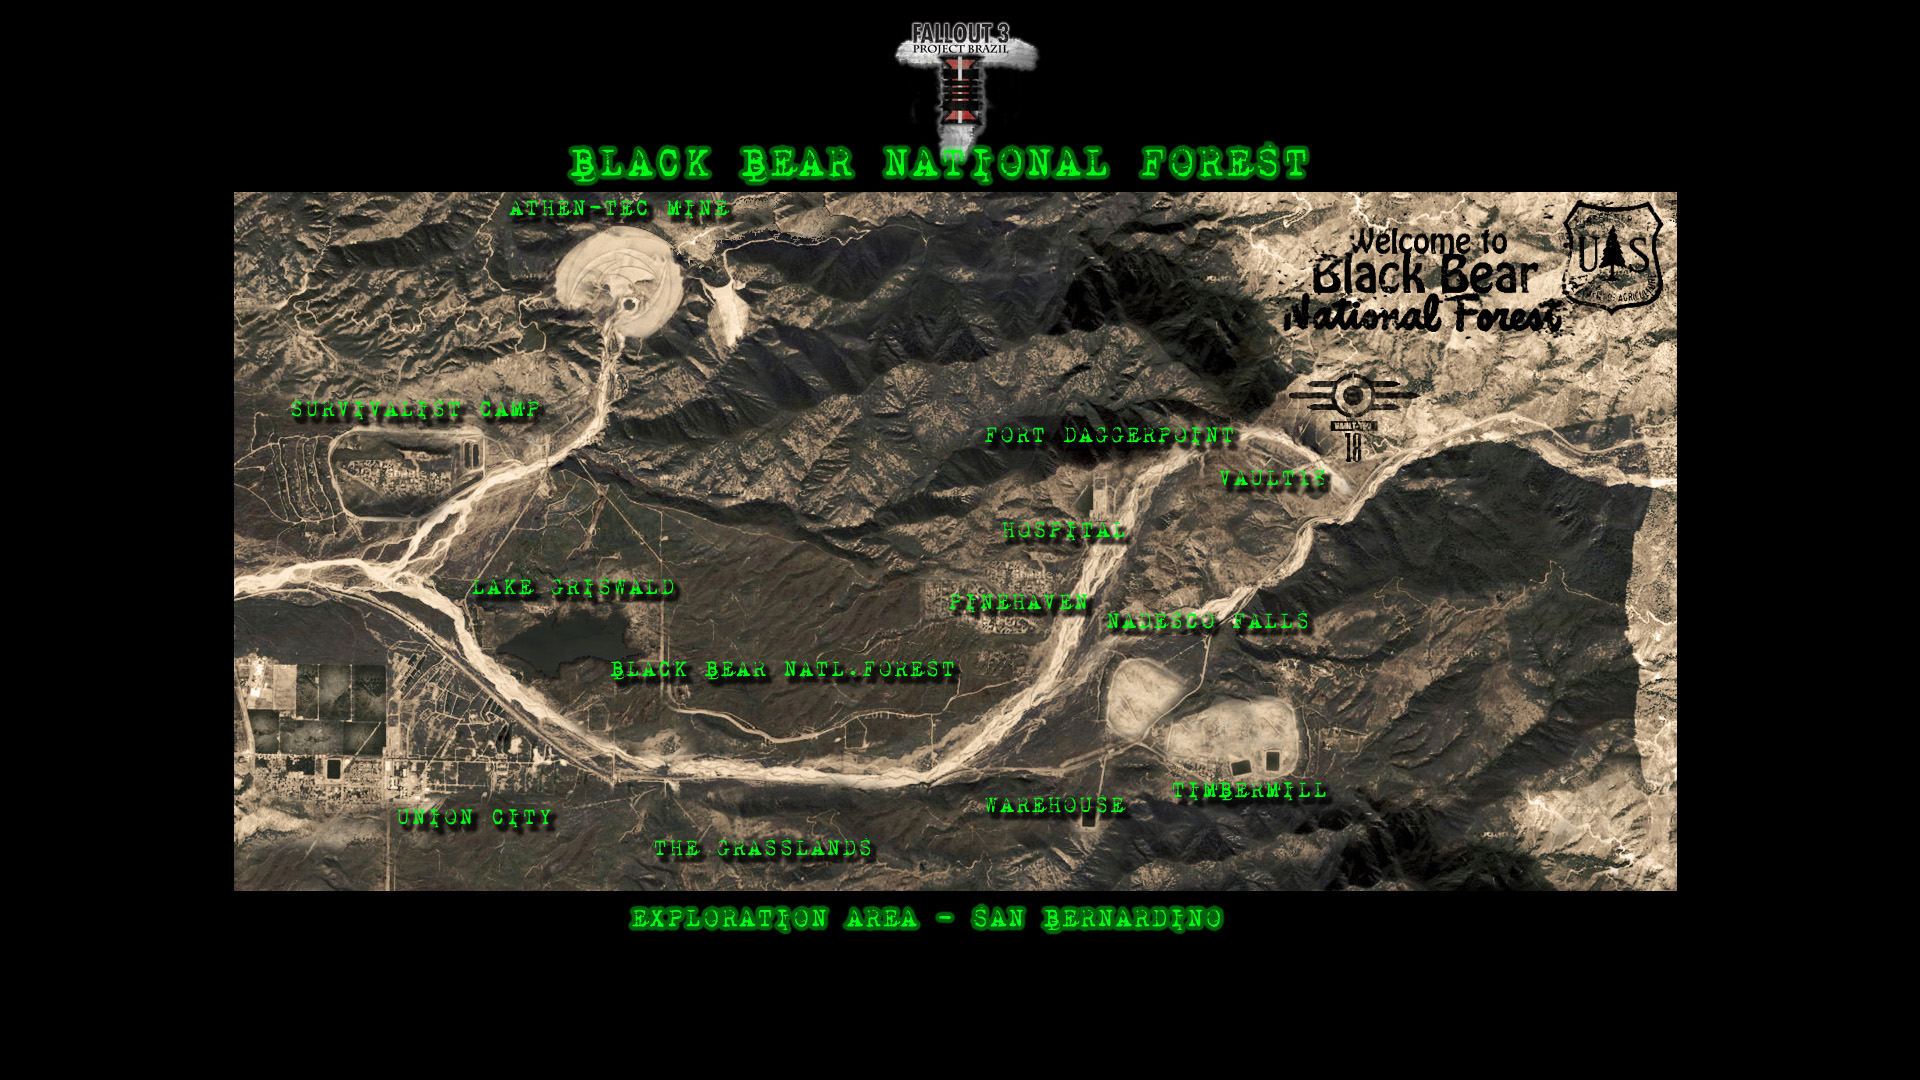 Black Bear National Forest Map image - Fallout: New California mod ...